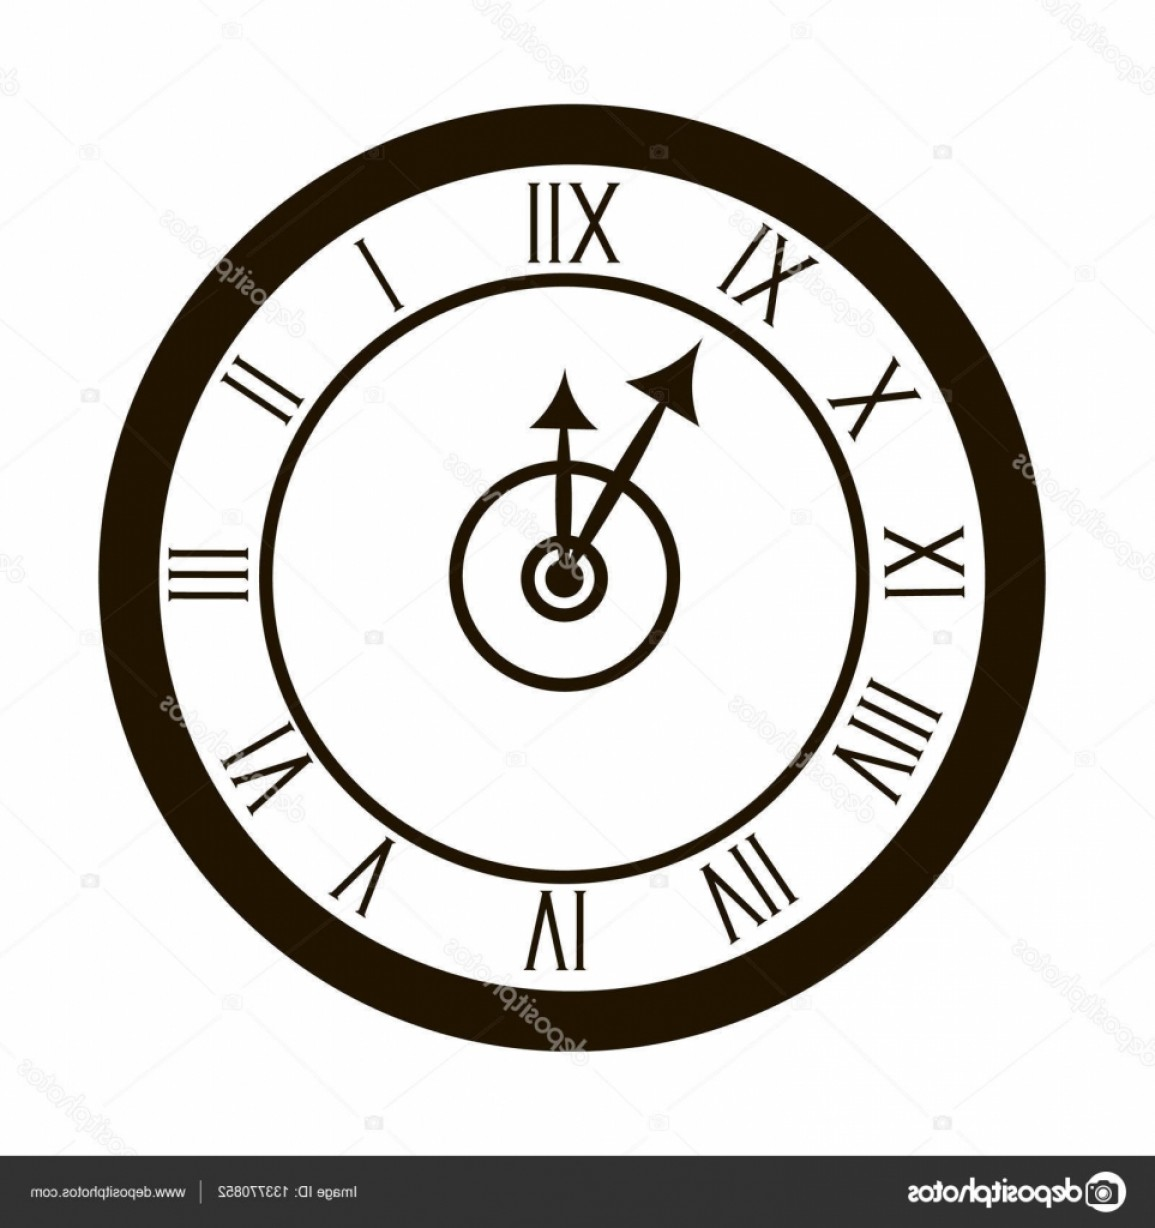 Watch Face Vector: Stock Illustration Clocks Face Dial Watch Alarm